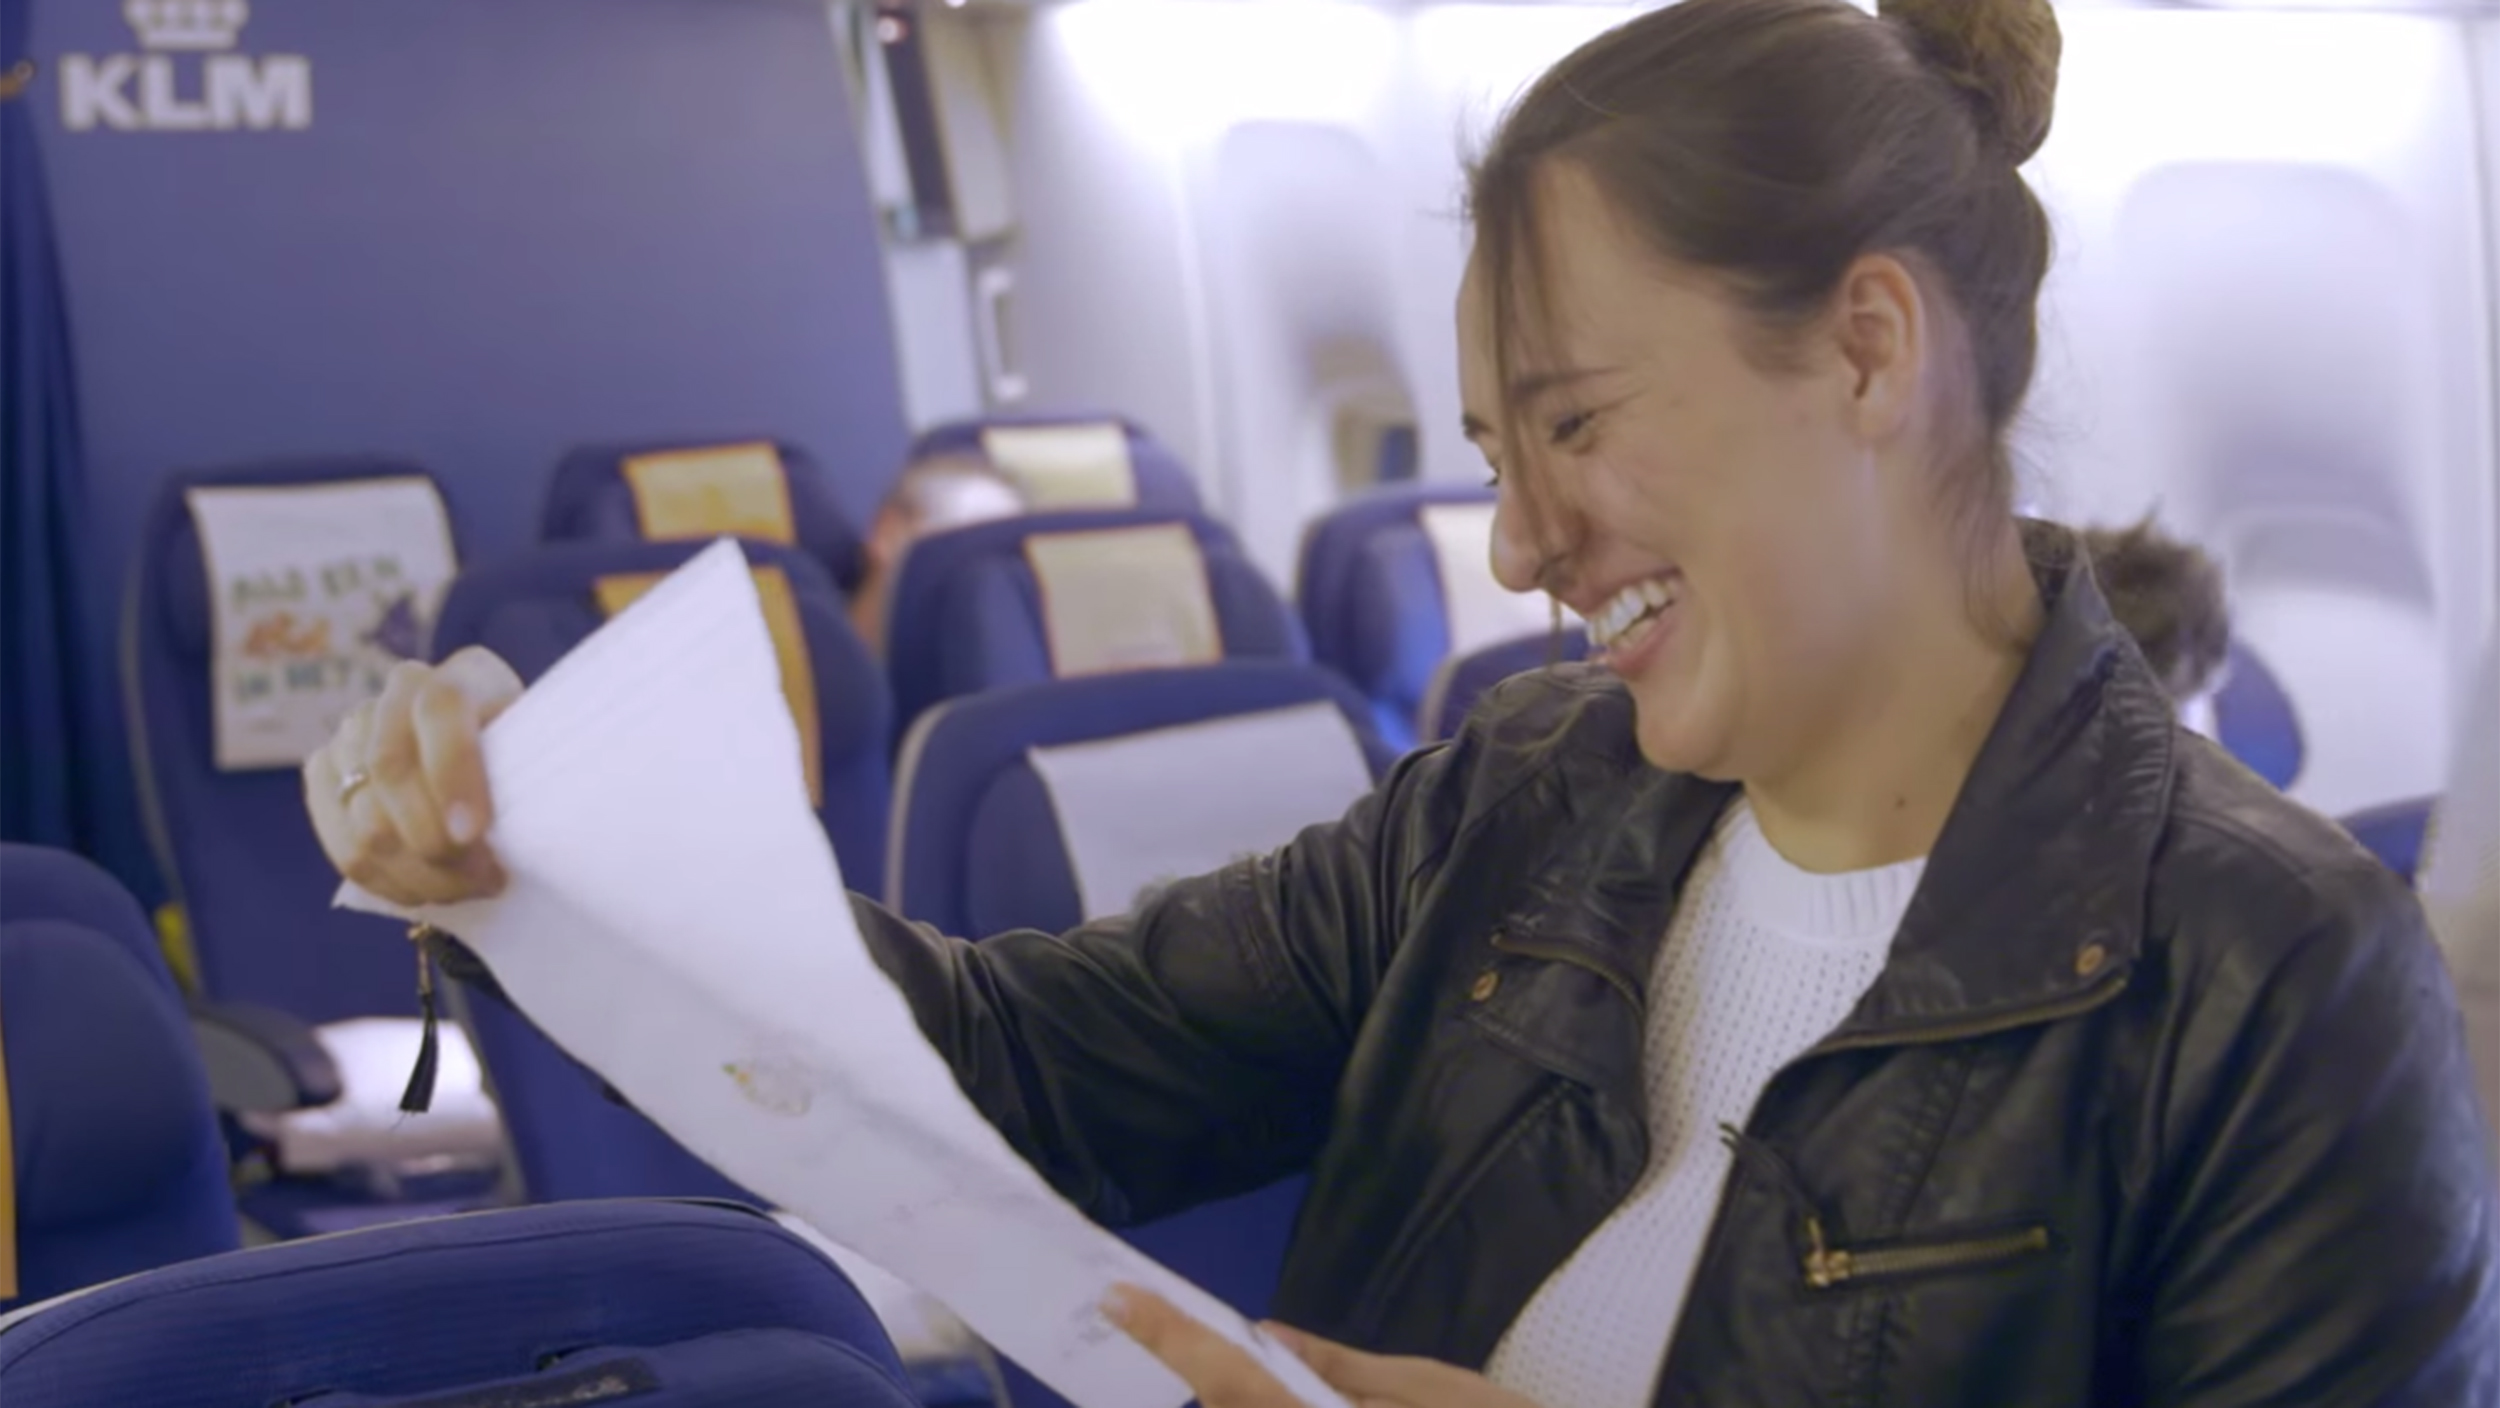 Klm moves passengers to tears with surprise greetings from loved ones m4hsunfo